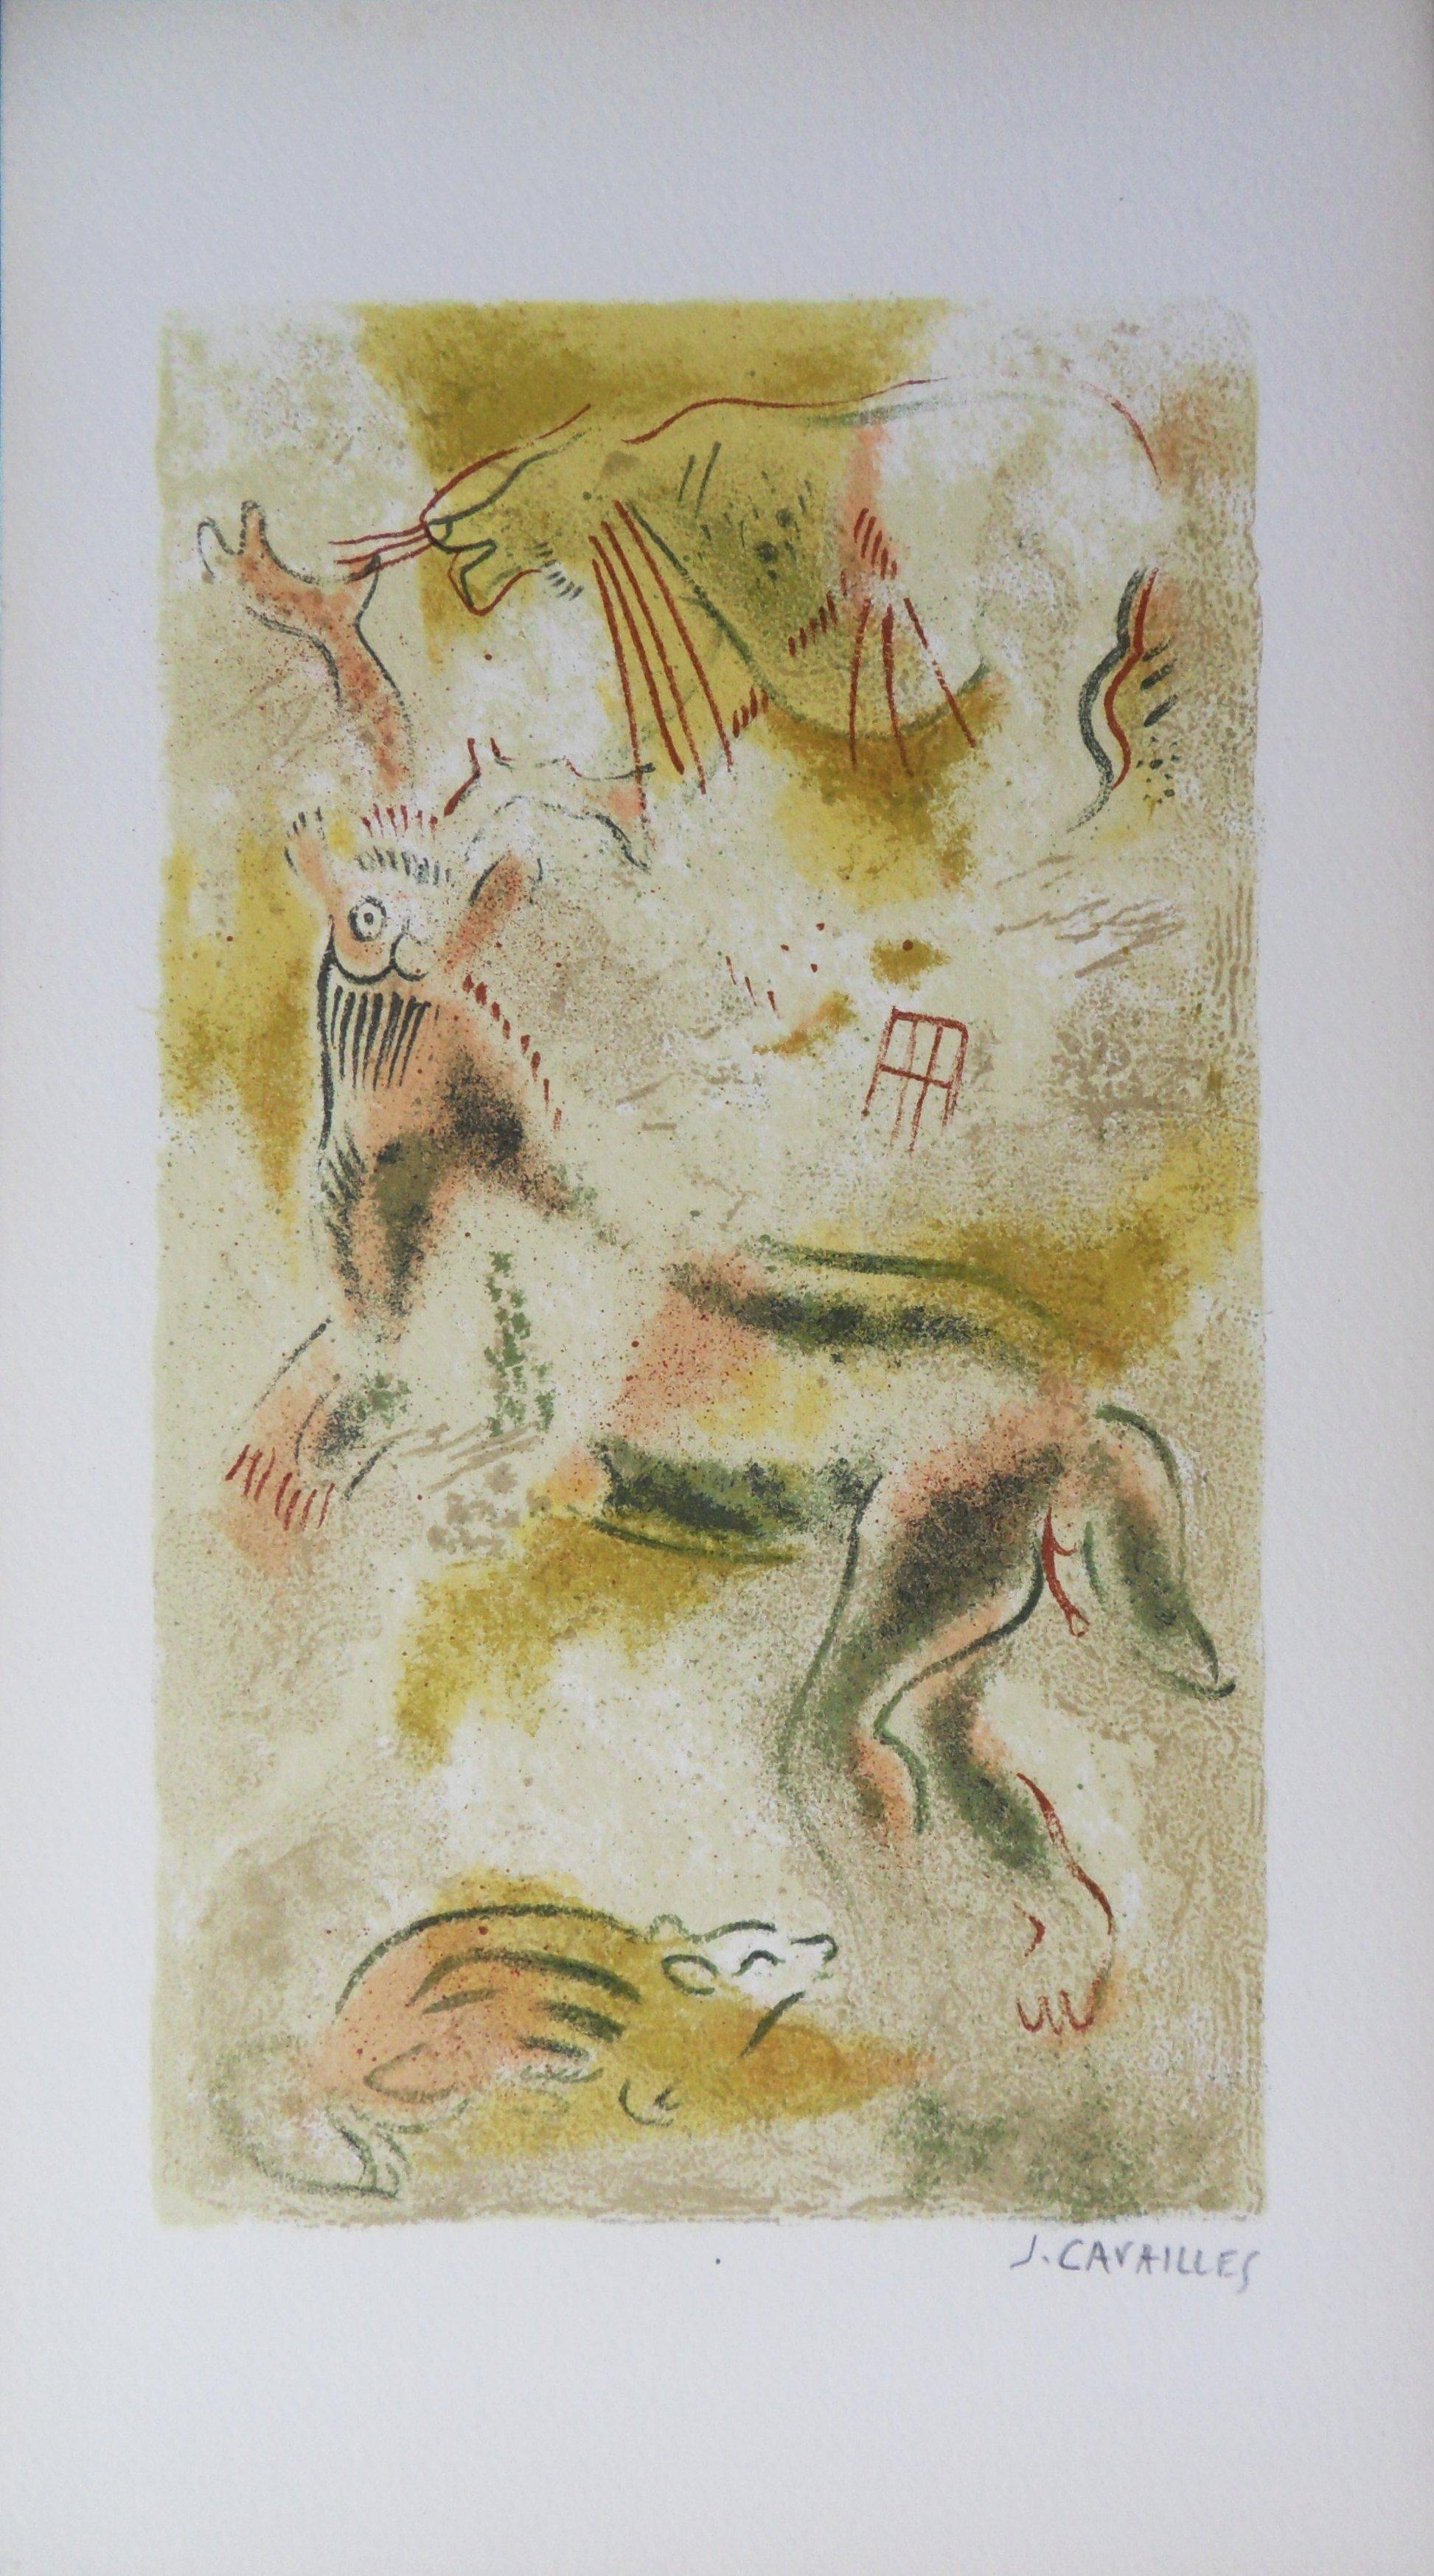 Rupestral Painting - Original lithograph, Handsigned